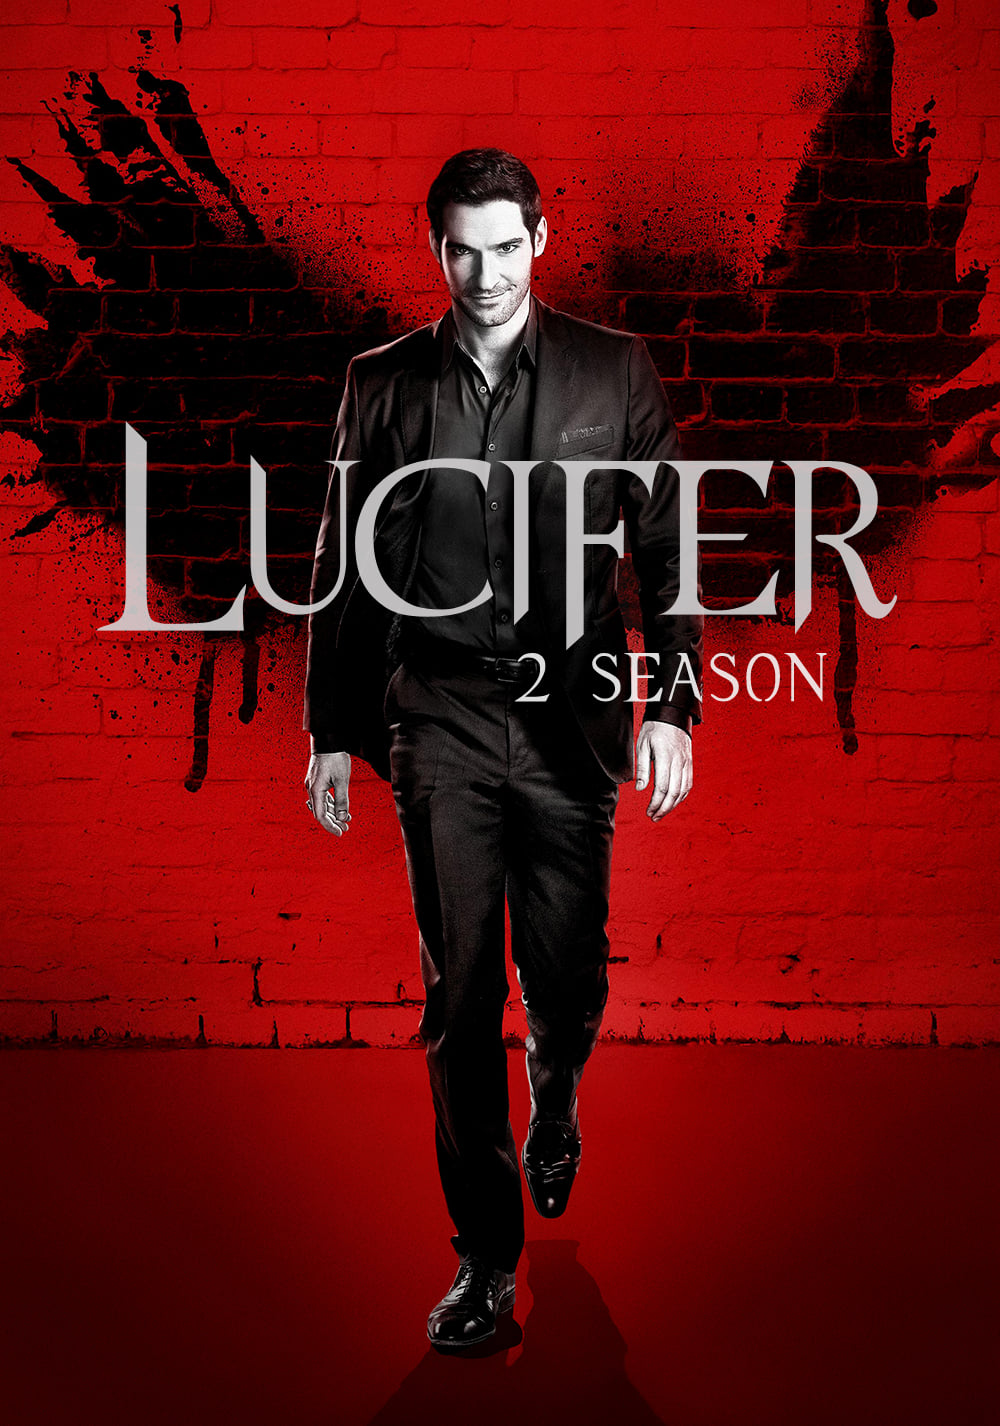 Lucifer Season 2